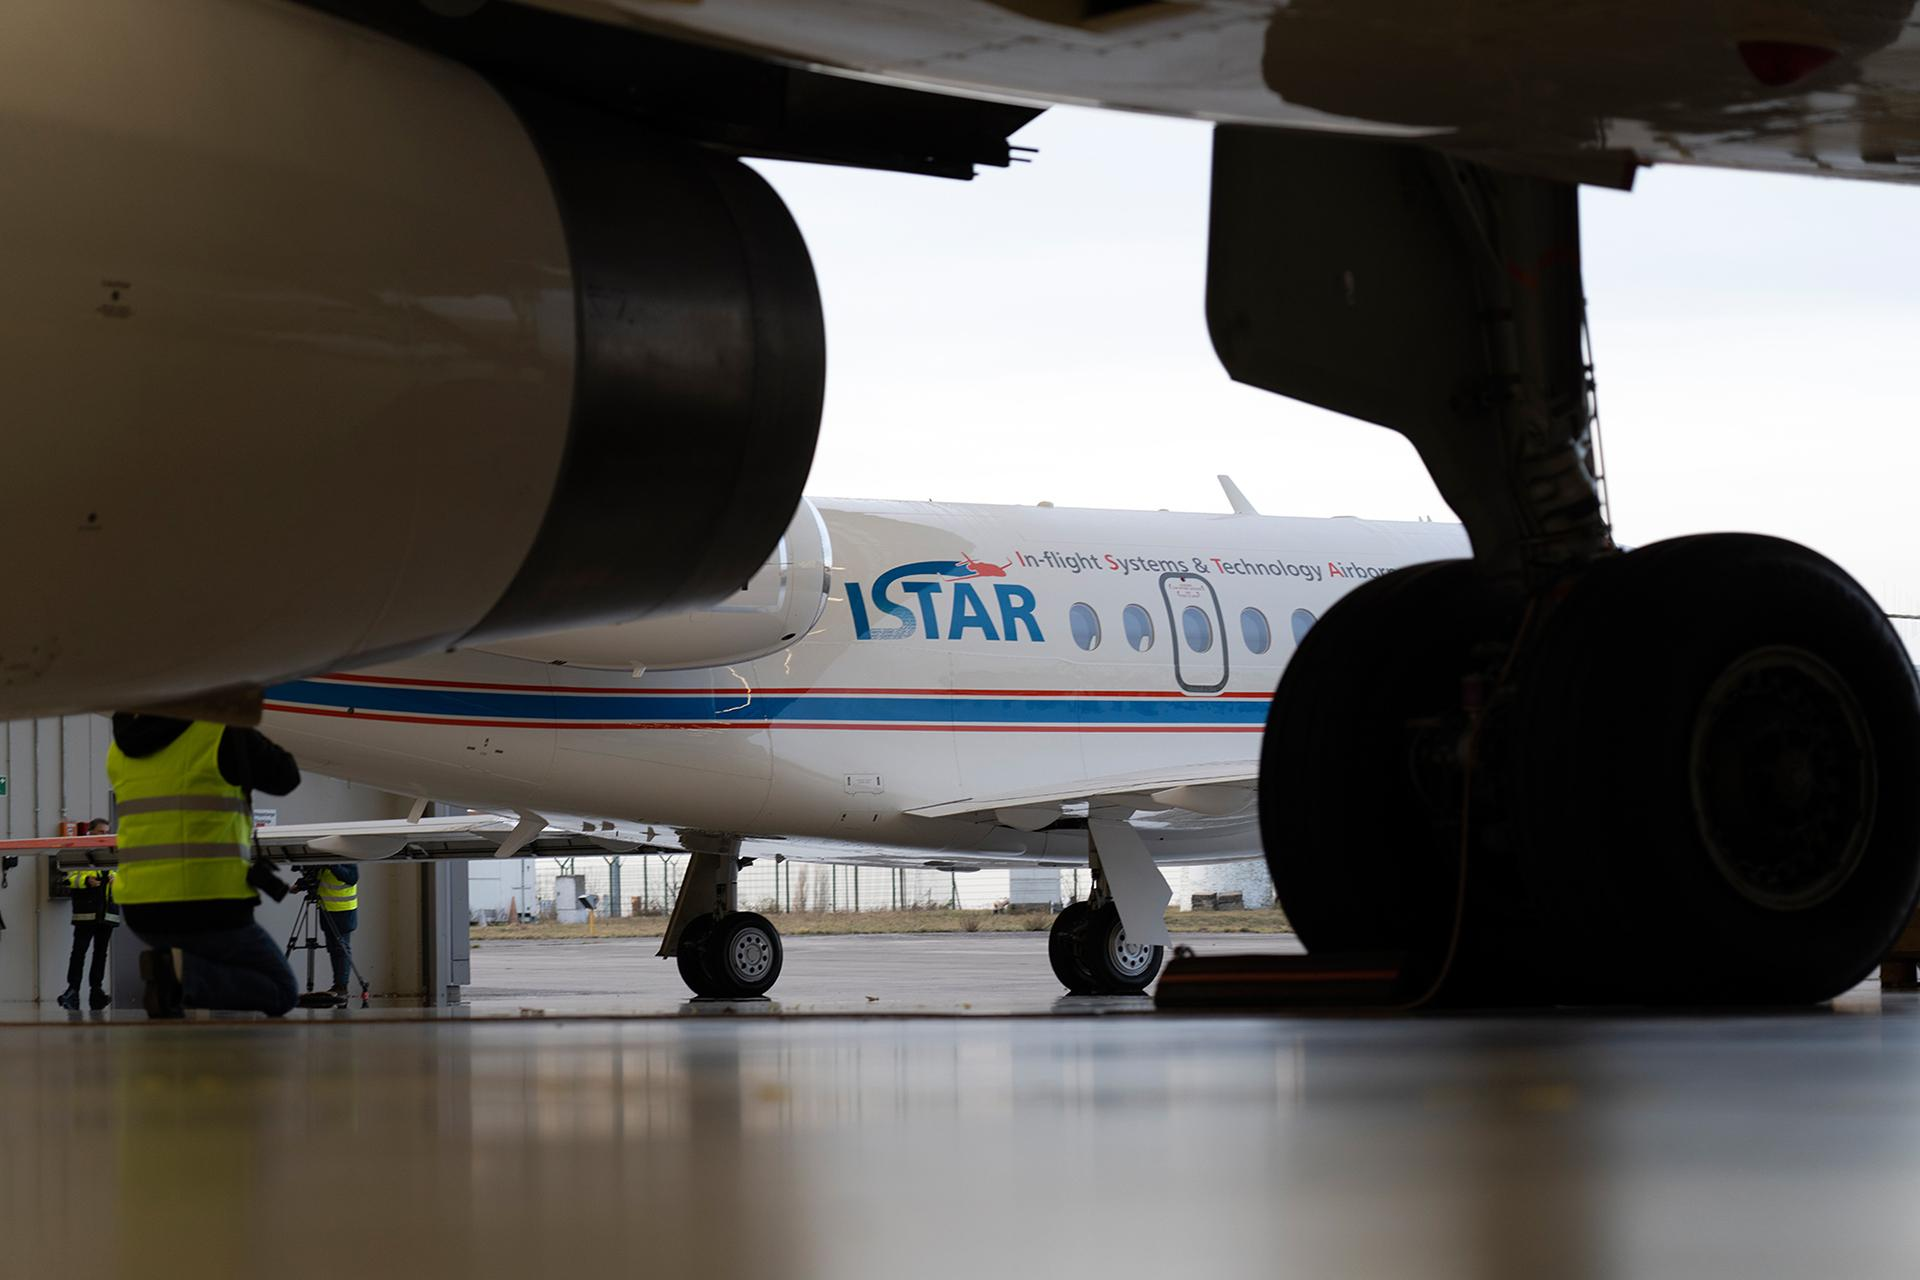 A new home for ISTAR in the hangar at DLR Braunschweig